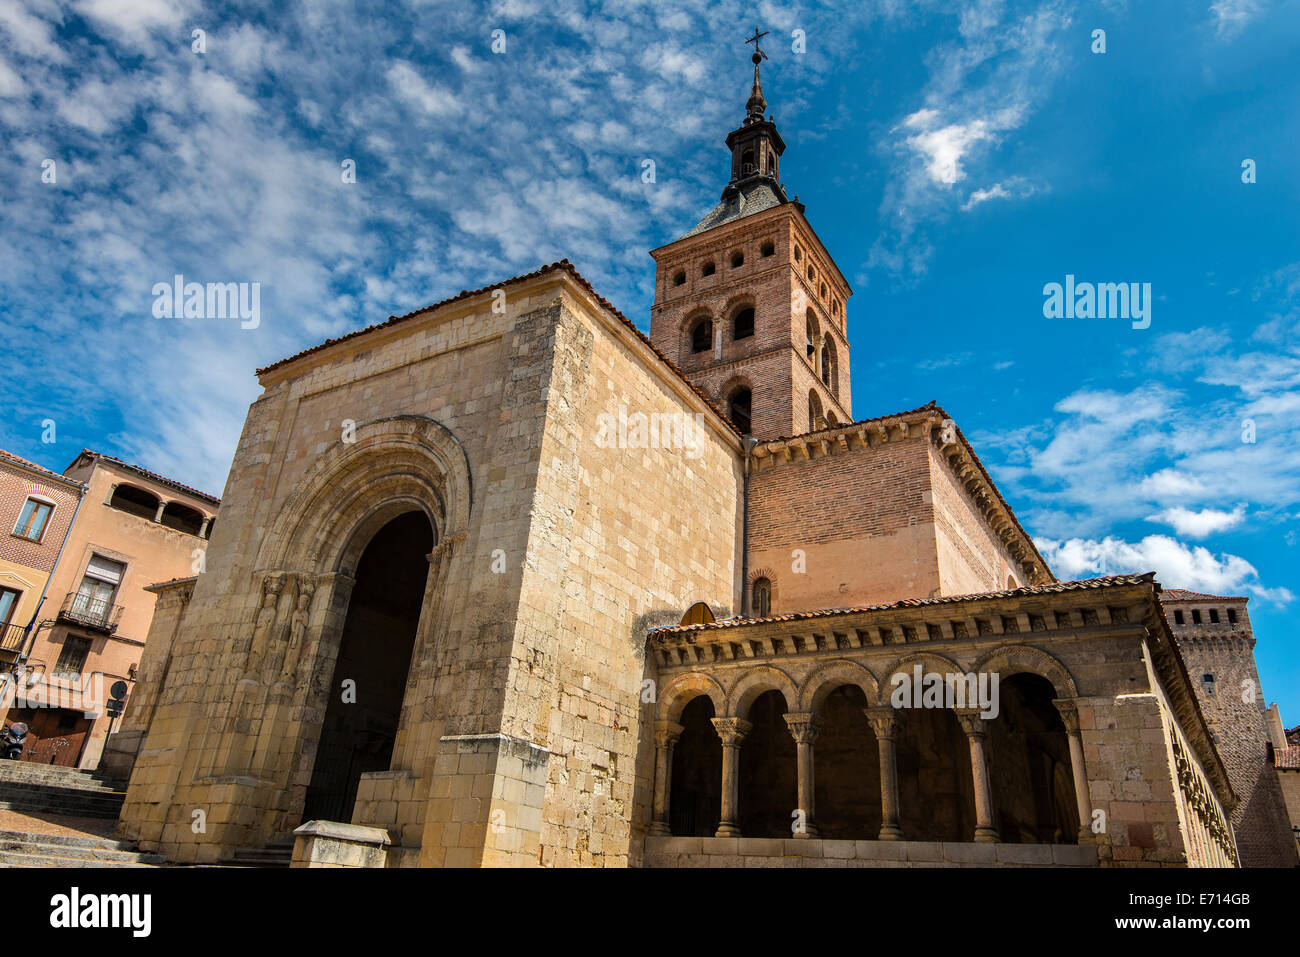 San Martin church, Segovia, Castile and Leon, Spain - Stock Image